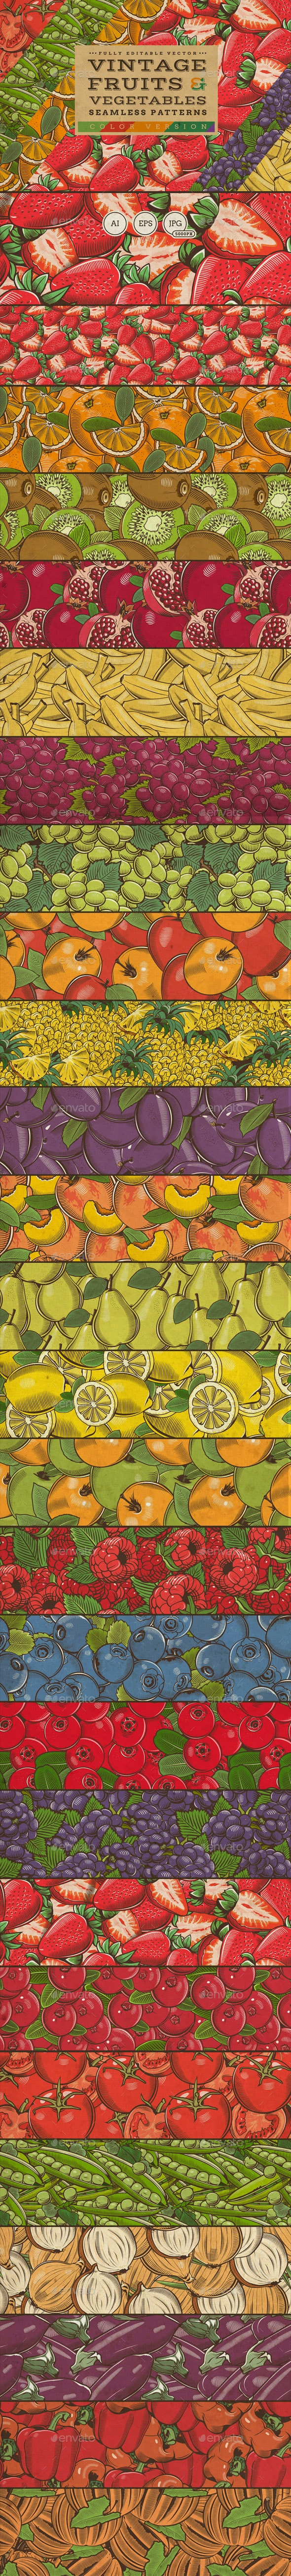 Fruits & Vegetables Vintage Seamless Patterns - Patterns Decorative